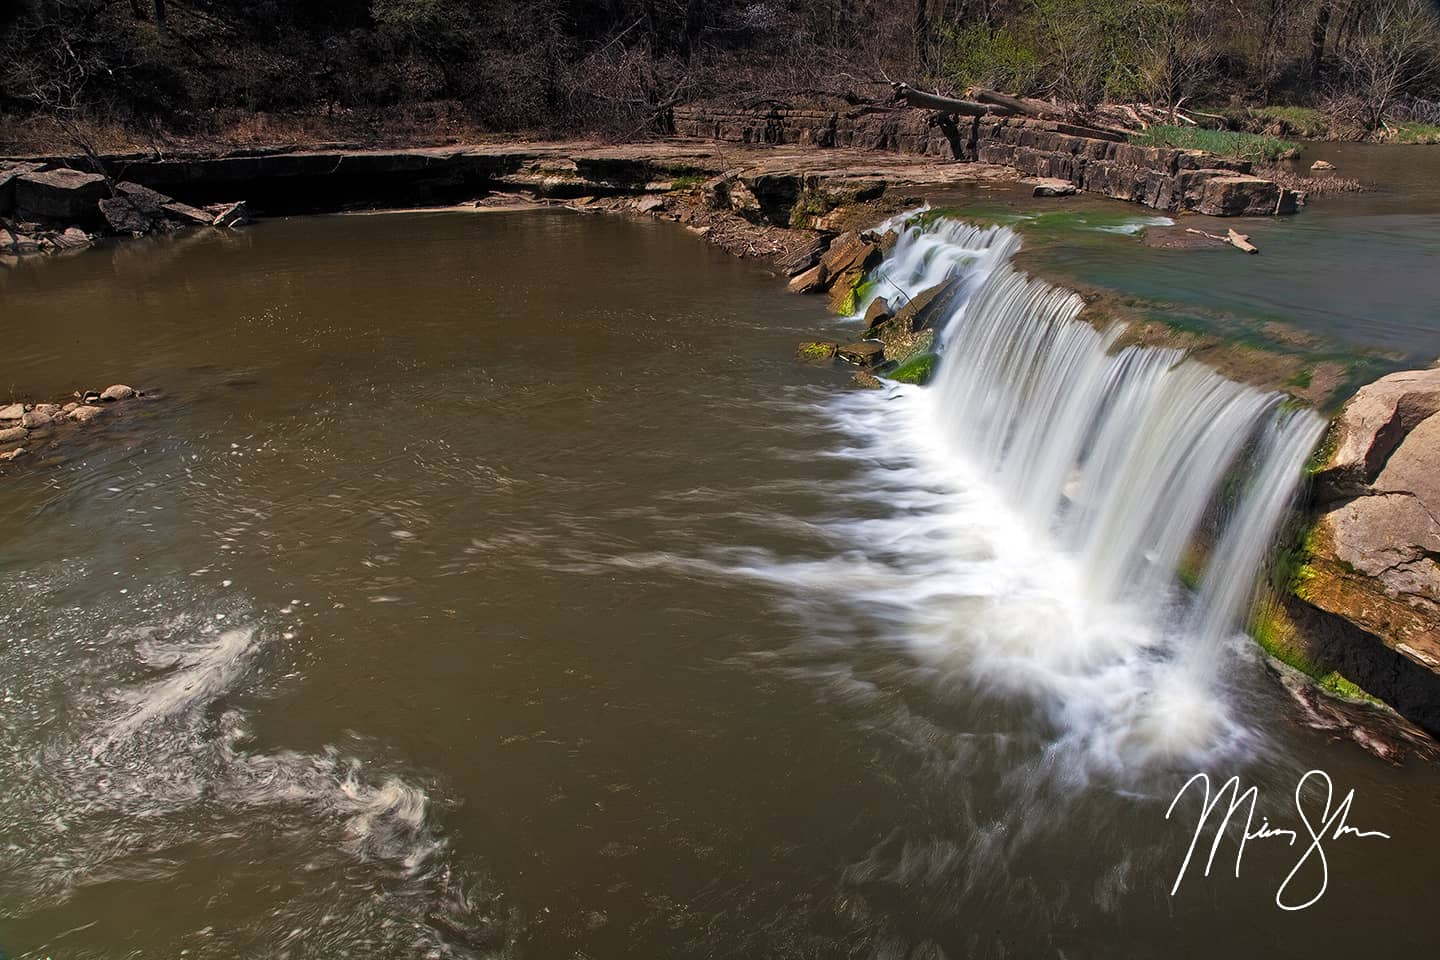 Open edition fine art print of The Flows of Elk Falls from Mickey Shannon Photography. Location: Elk Falls, Kansas